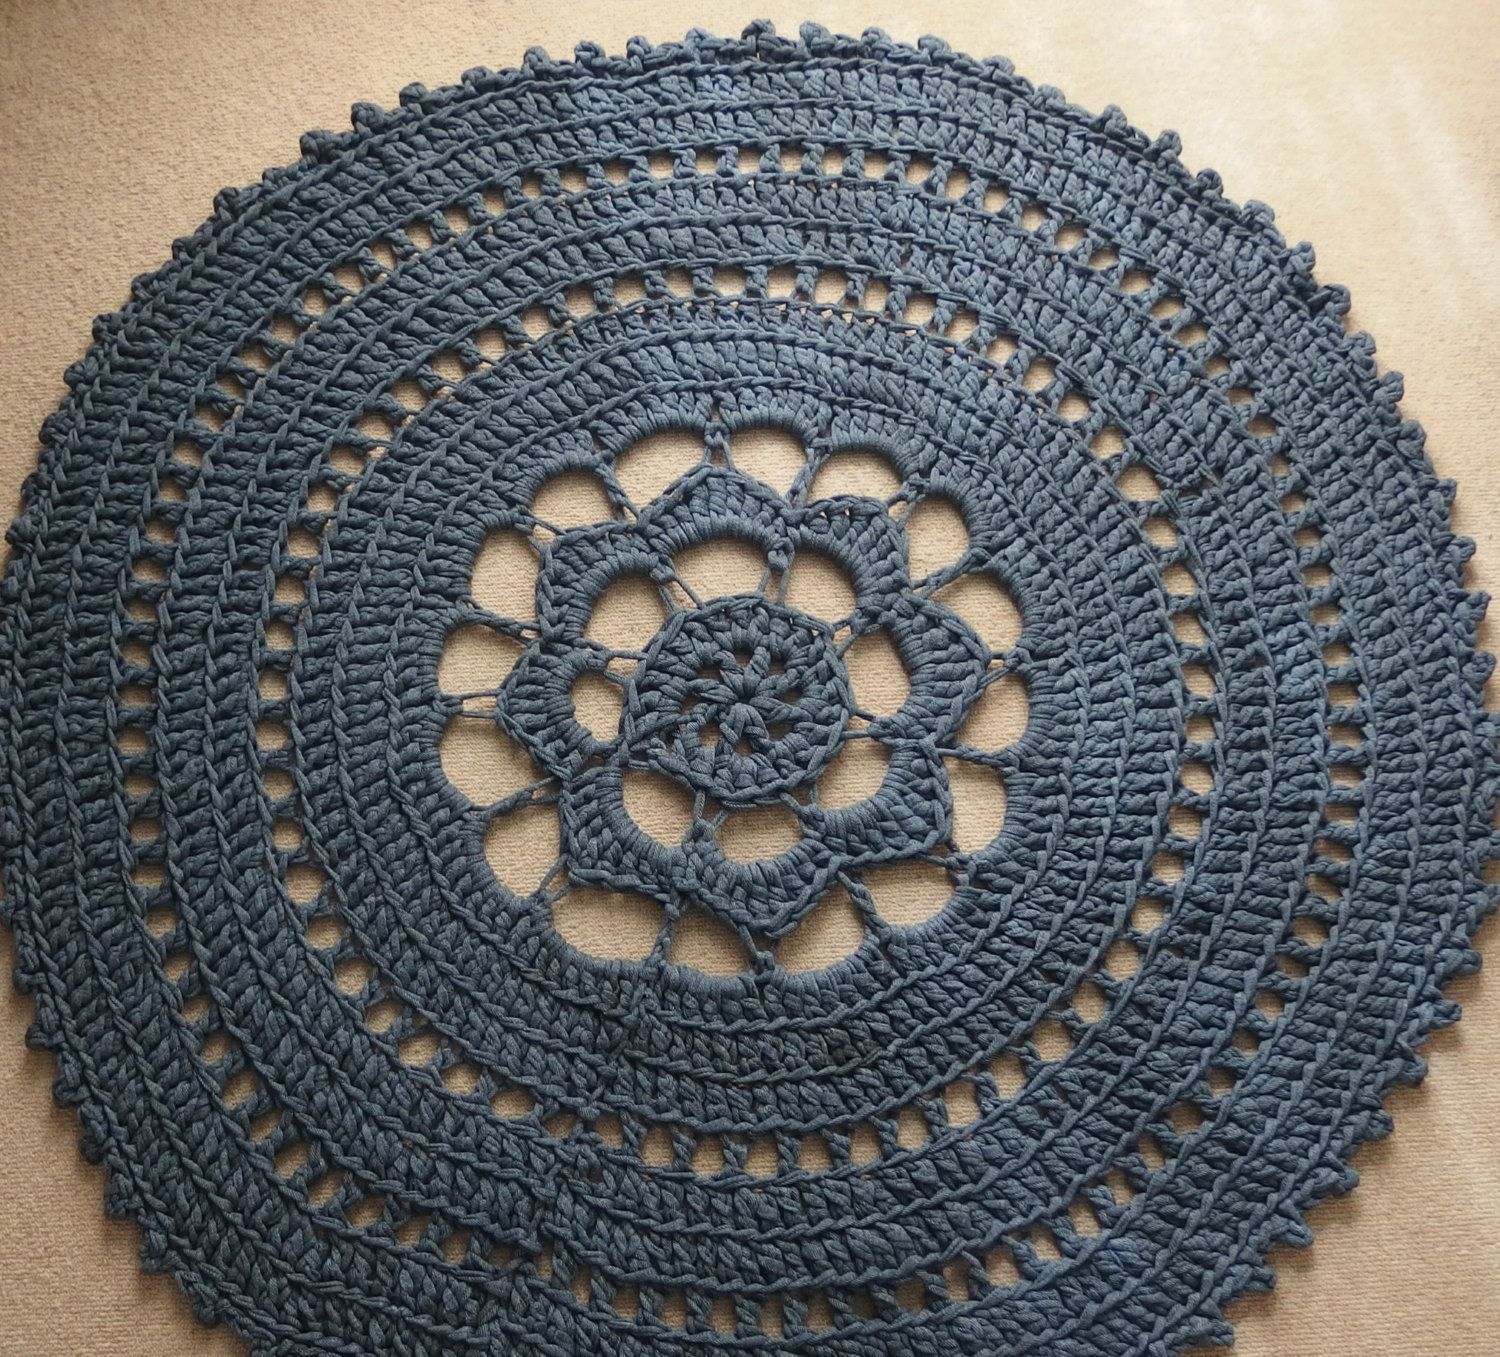 Crochet Round Rug Off Zpagetti T Shirt Yarn In The Color Dark Blue